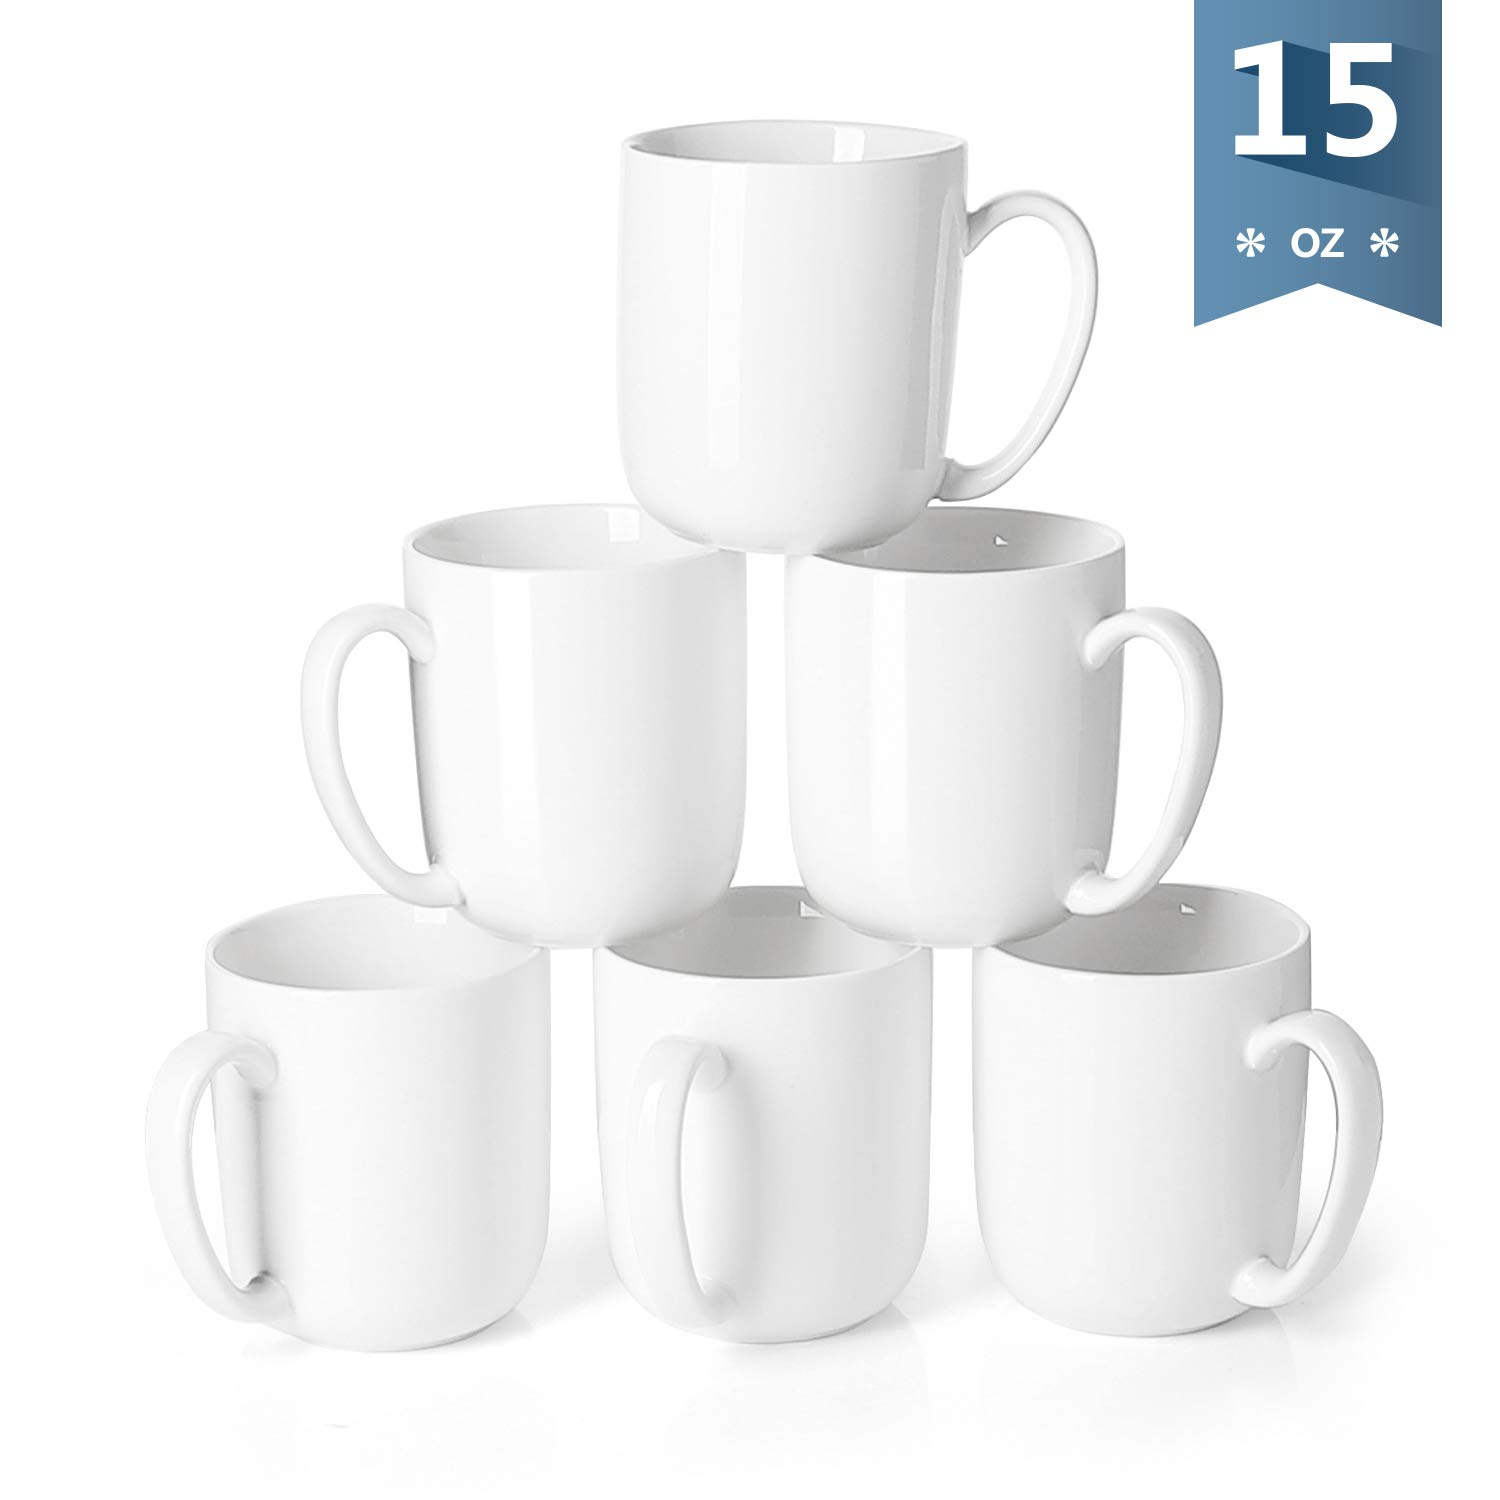 Sweese 6215 Porcelain Mugs for Coffee, Tea, Cocoa, 15 Ounce, Set of 6, White